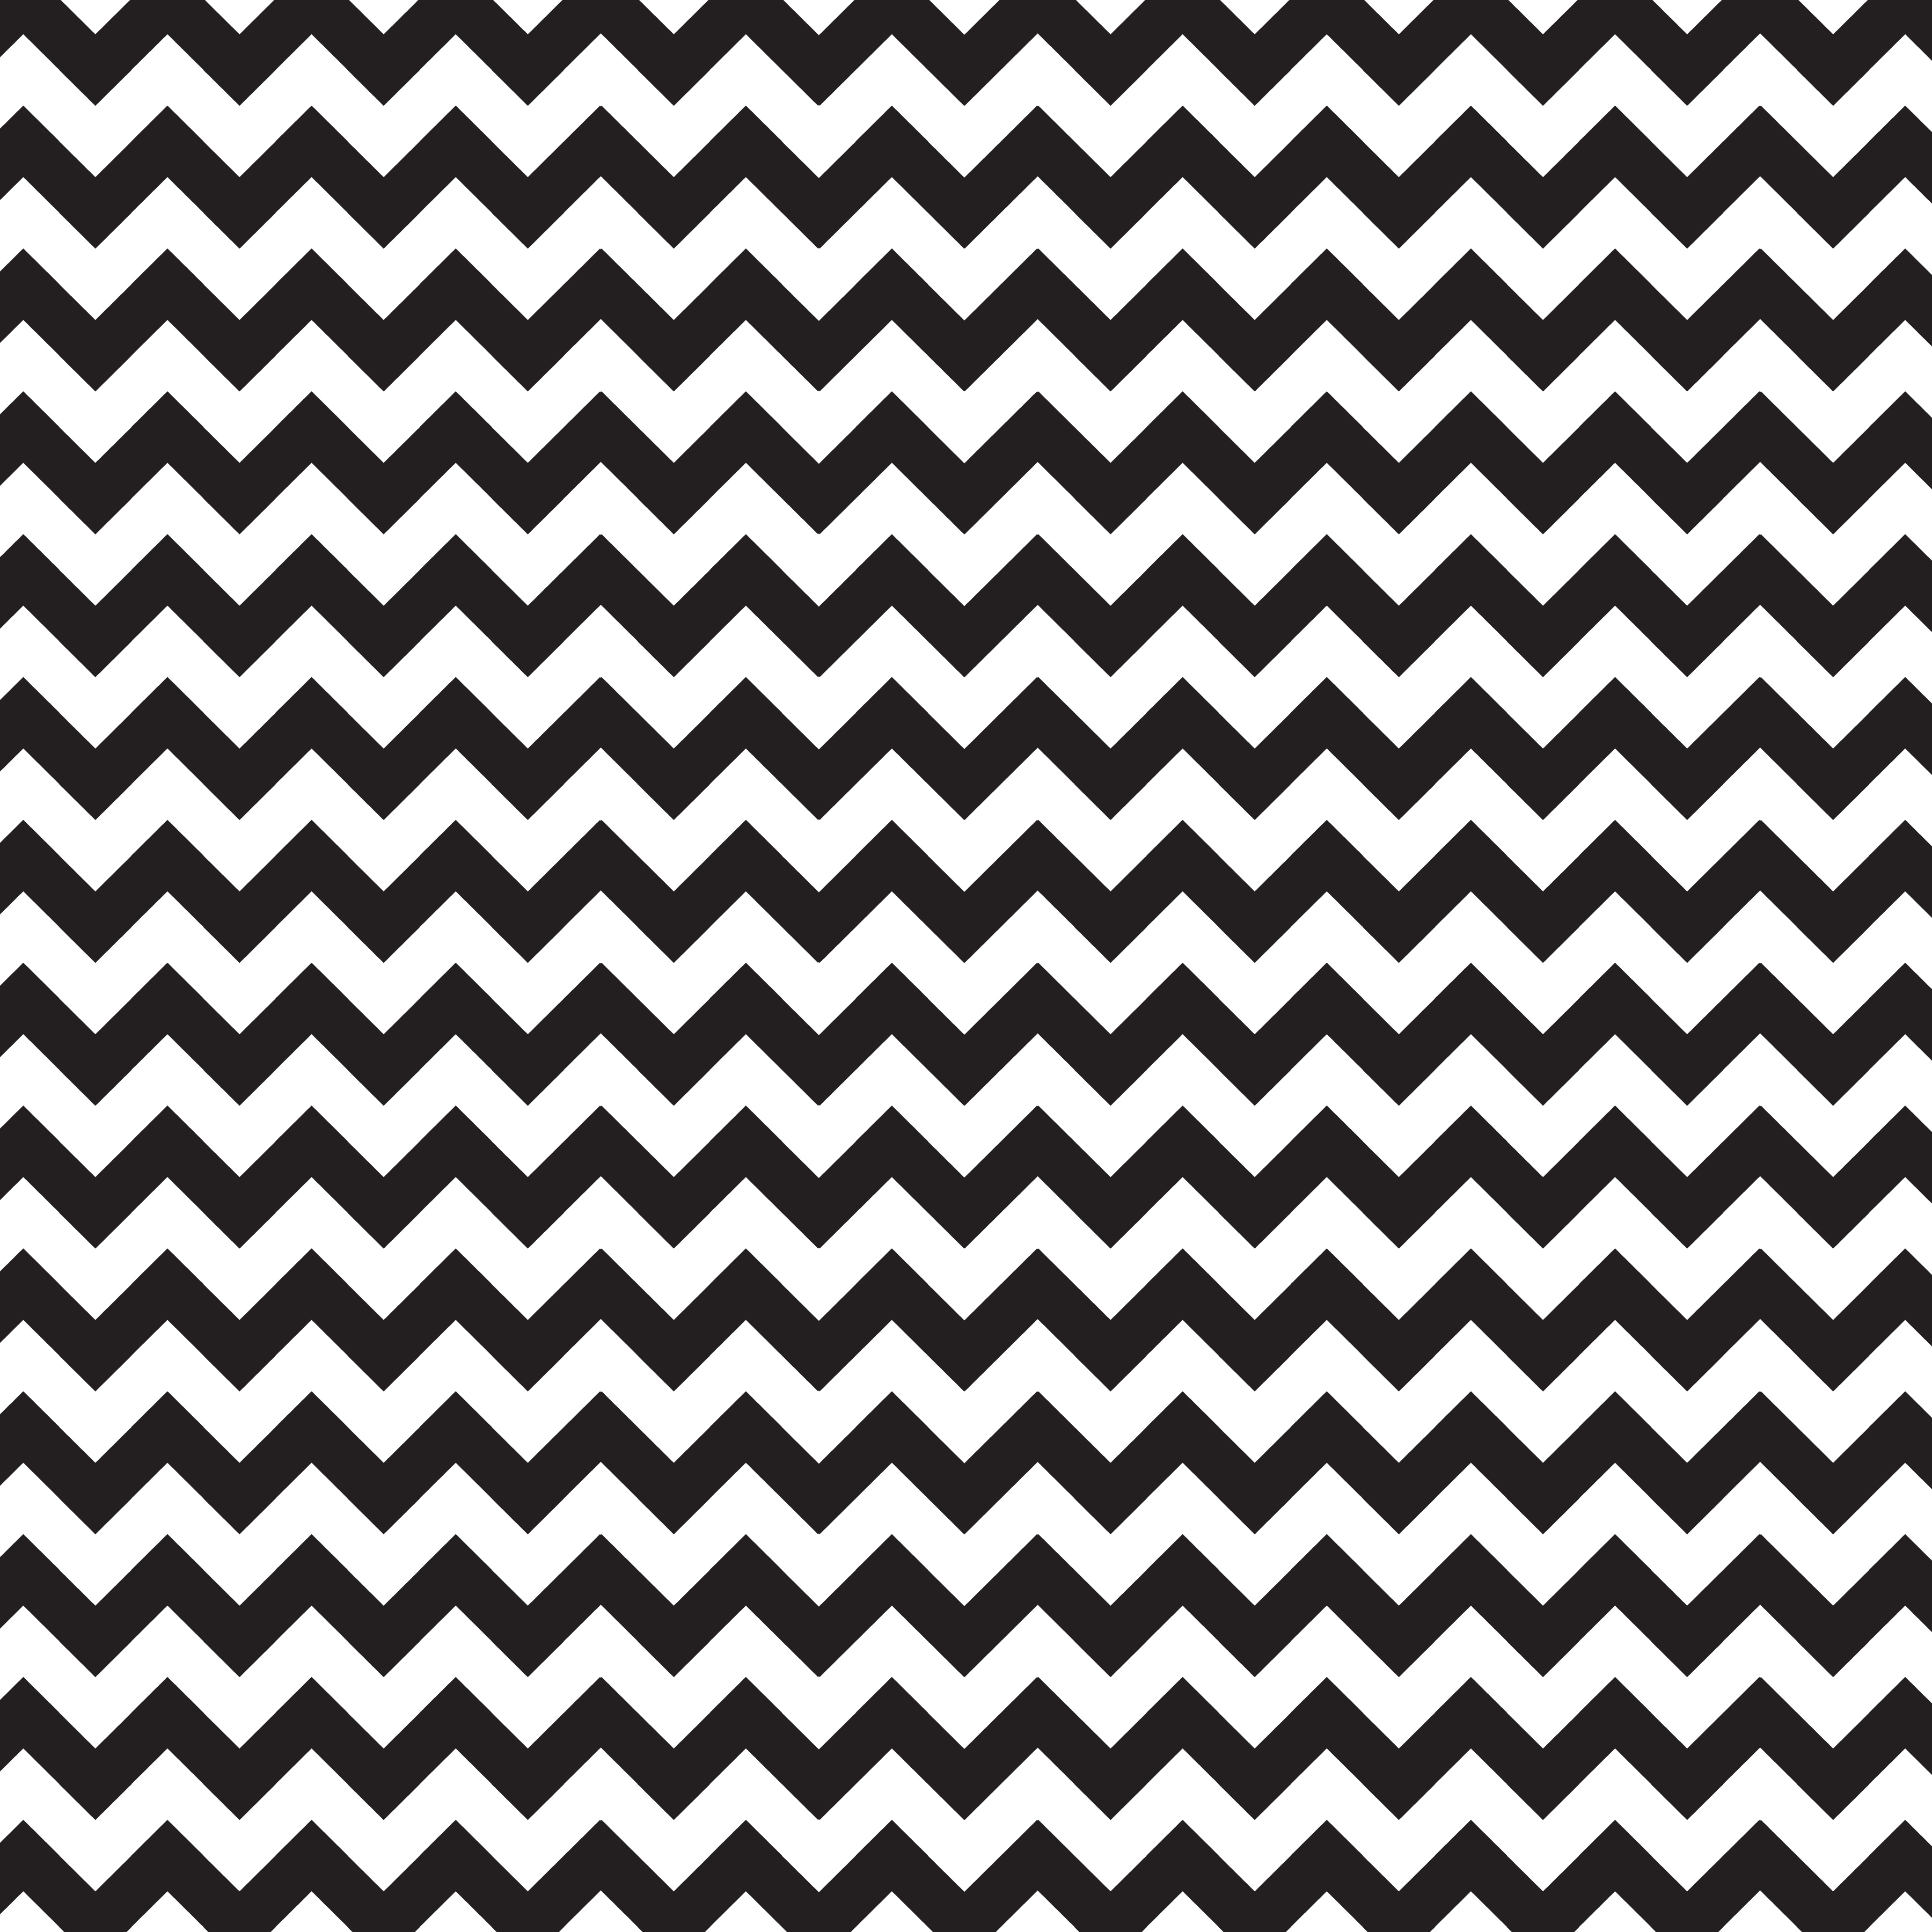 chevron style wallpaper - photo #18